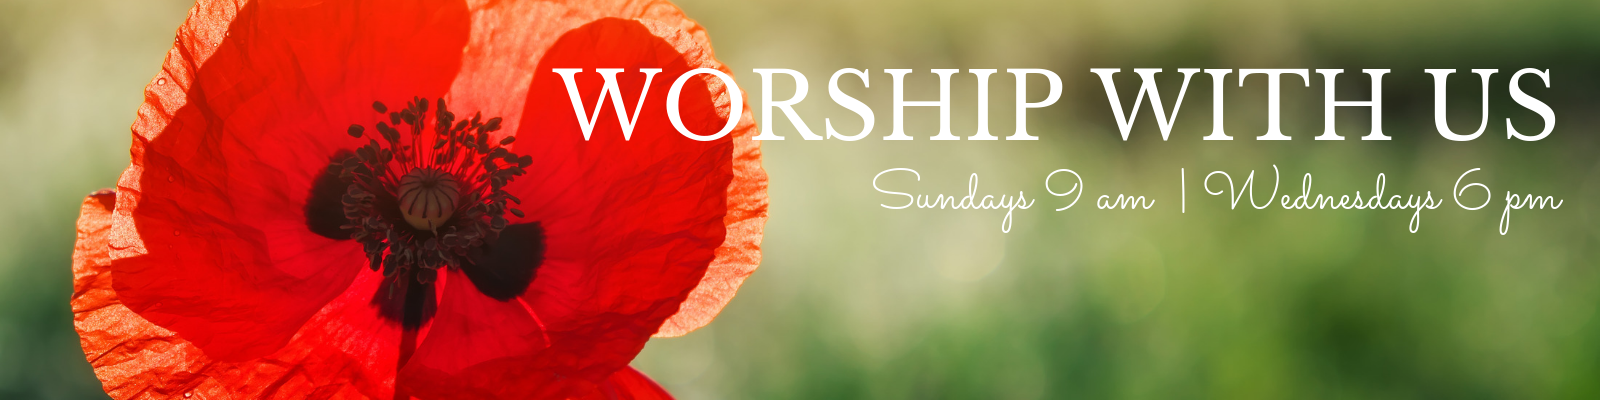 Join us this summer for worship at St John Lutheran Church in Ely, Iowa